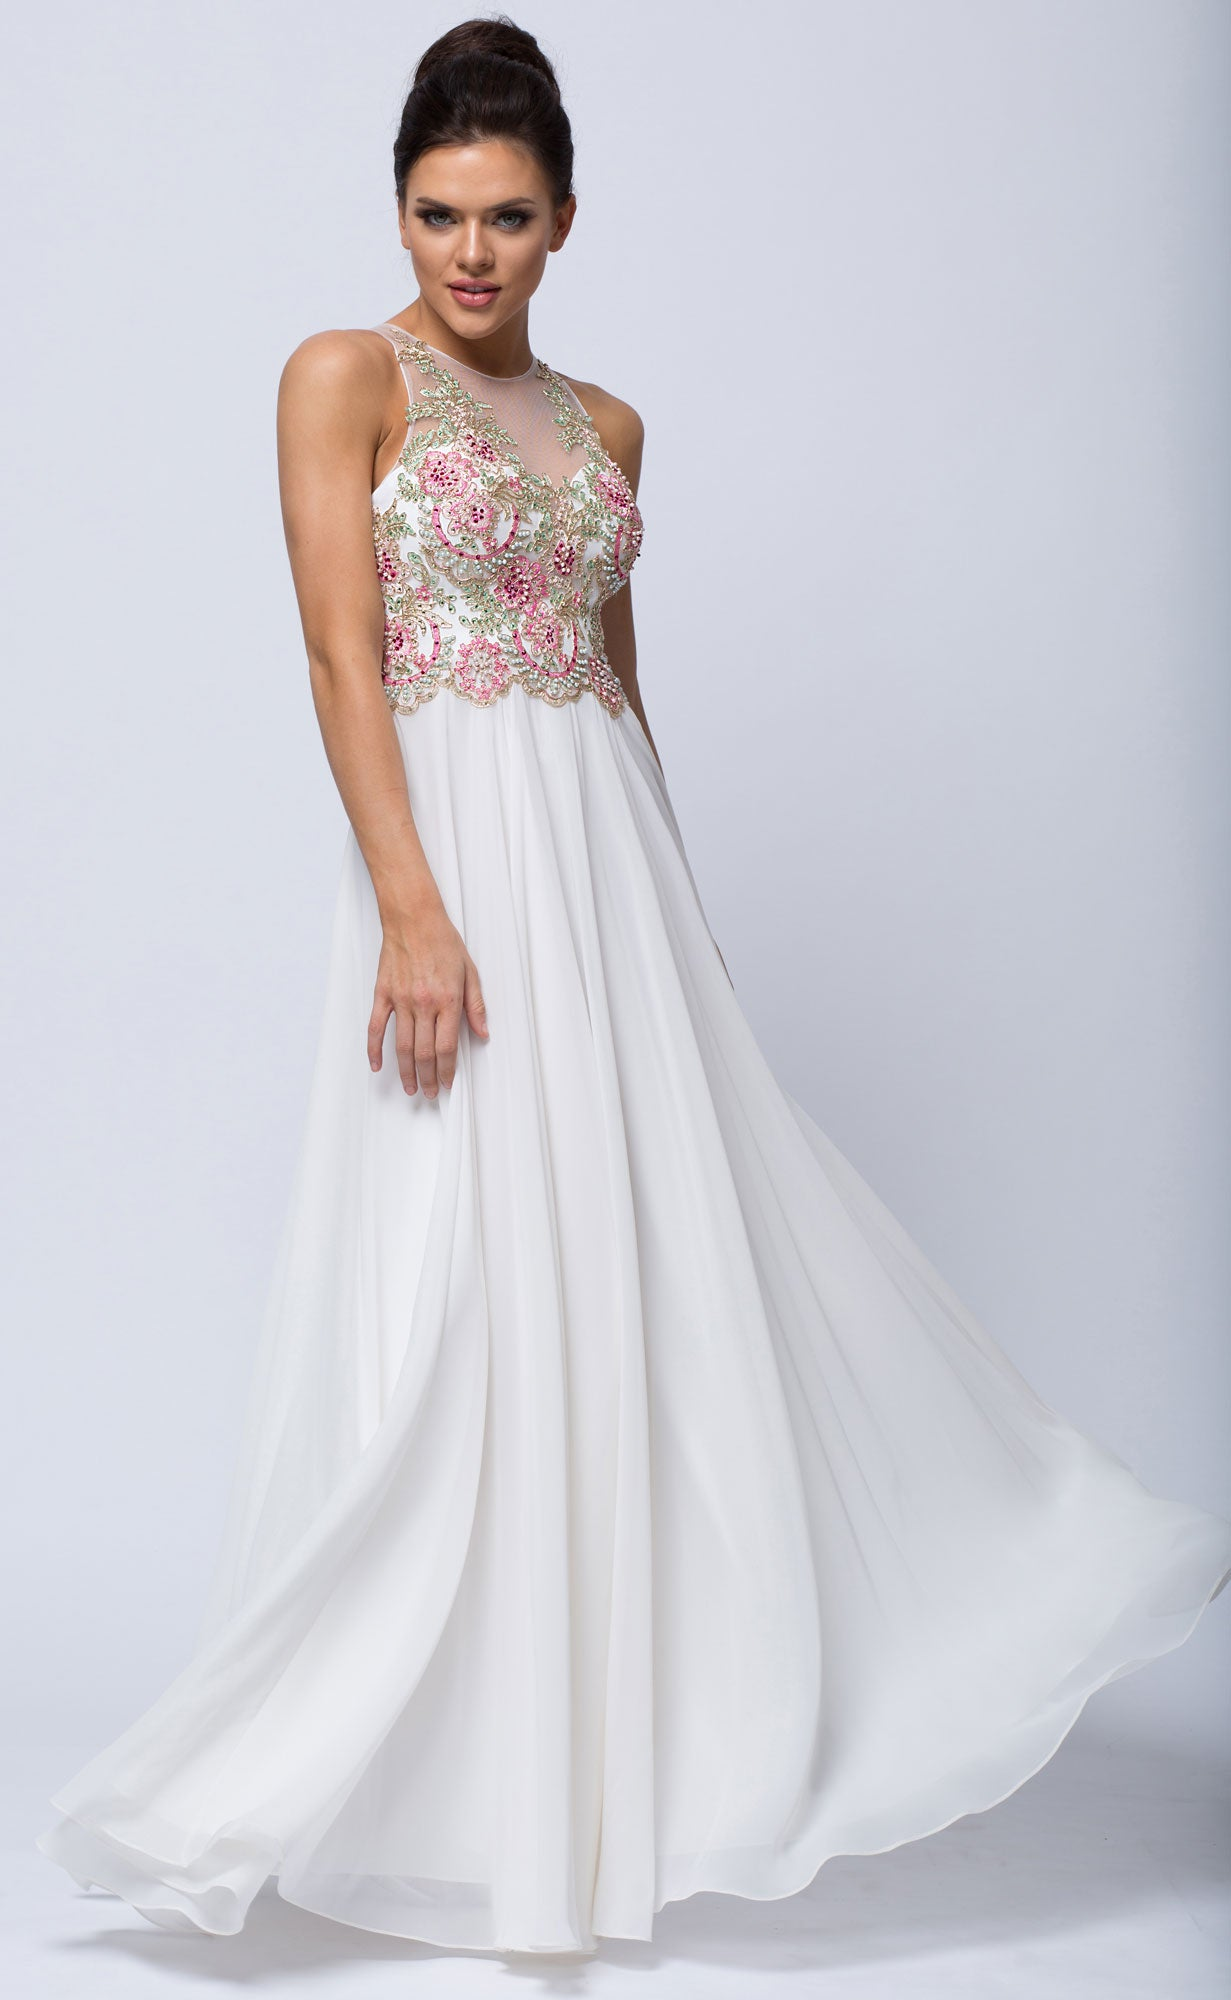 Image of Sleeveless Floral Accent Beaded Top Long Prom Dress in Ivory/Pink